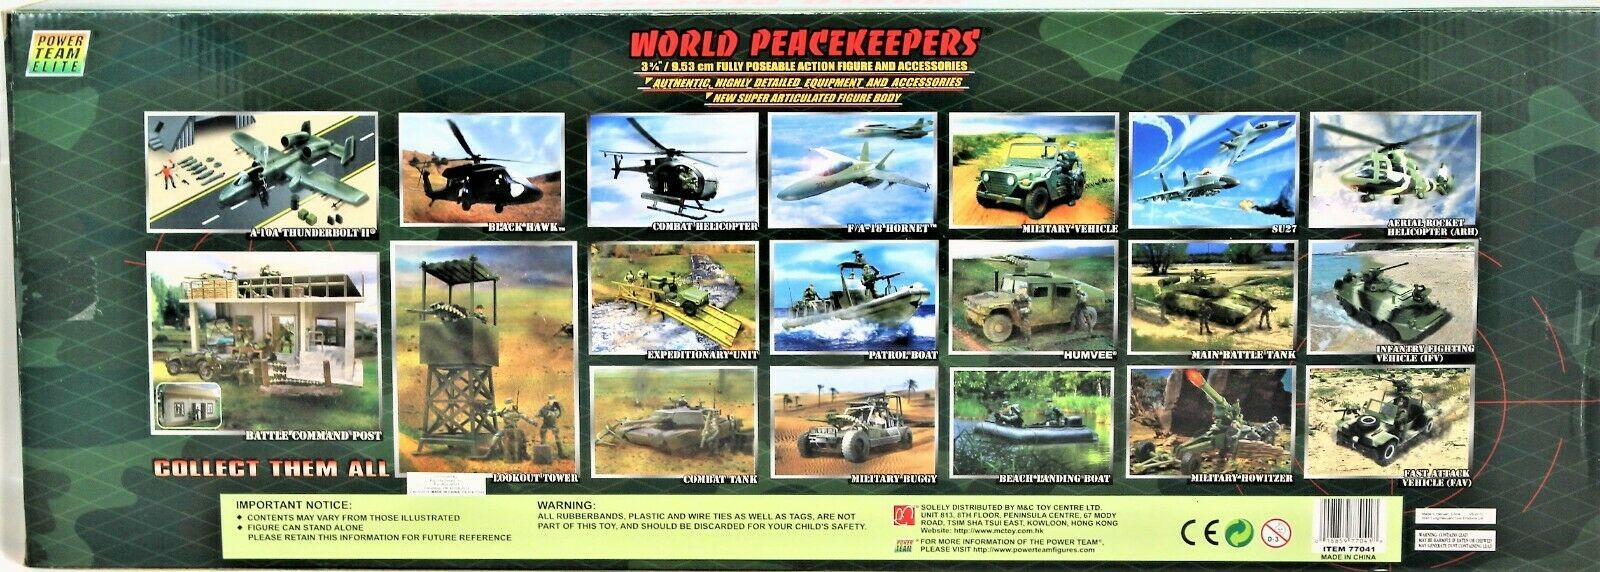 World Peacekeepers Power Team Elite Aerial Rocket Helicopter (ARH) 1:18 Scale image 8